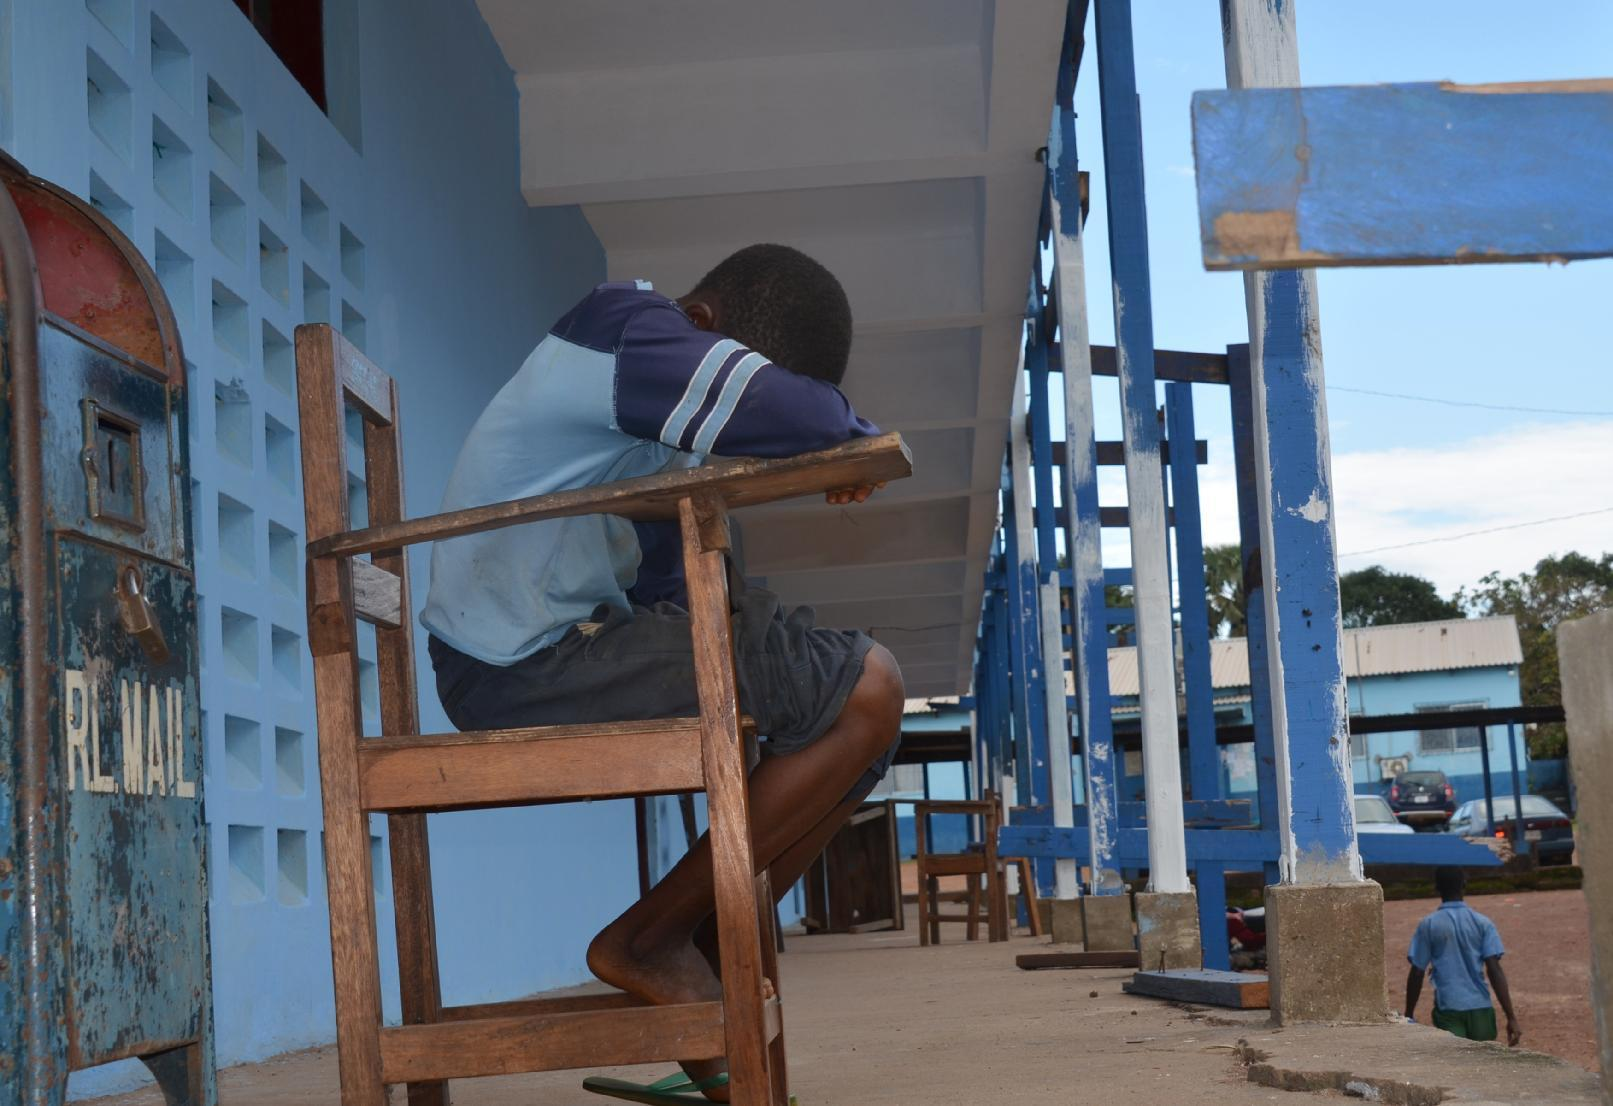 Ebola-hit Liberia delays school reopening